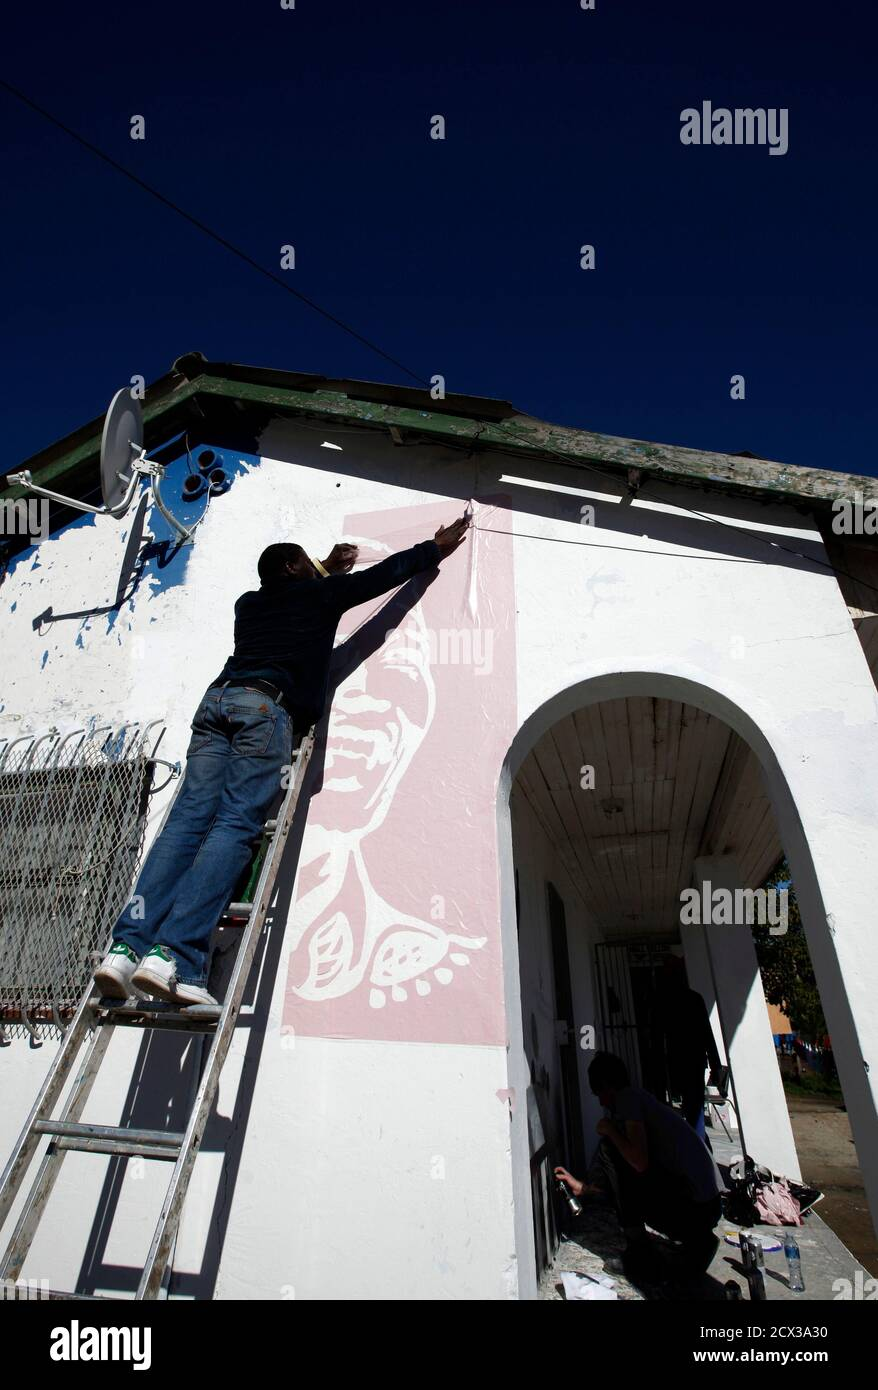 A volunteer paints a mural depicting the life of former President Nelson Mandela at a library in Cape Town's Imizamo yethu township, July 18, 2012. Thousands of South Africans heeded the call to offer 67 minutes of their time to help build communities as part of celebrations of Mandela's 94 birthday today.  REUTERS/Mike Hutchings (SOUTH AFRICA - Tags: POLITICS ANNIVERSARY SOCIETY) Stock Photo